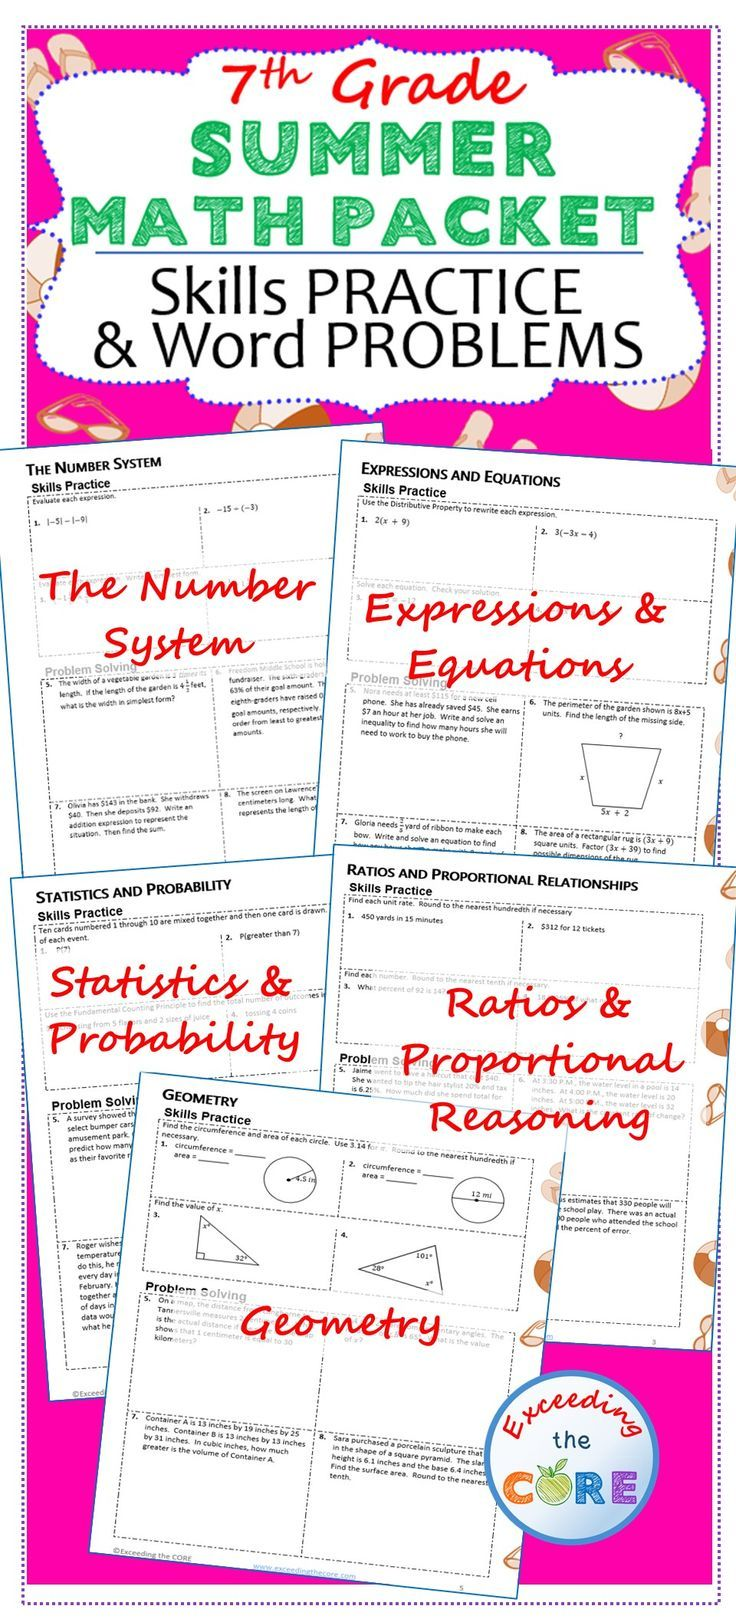 Algebra 2 Summer Review Packet Answer Key | Viewsummer co